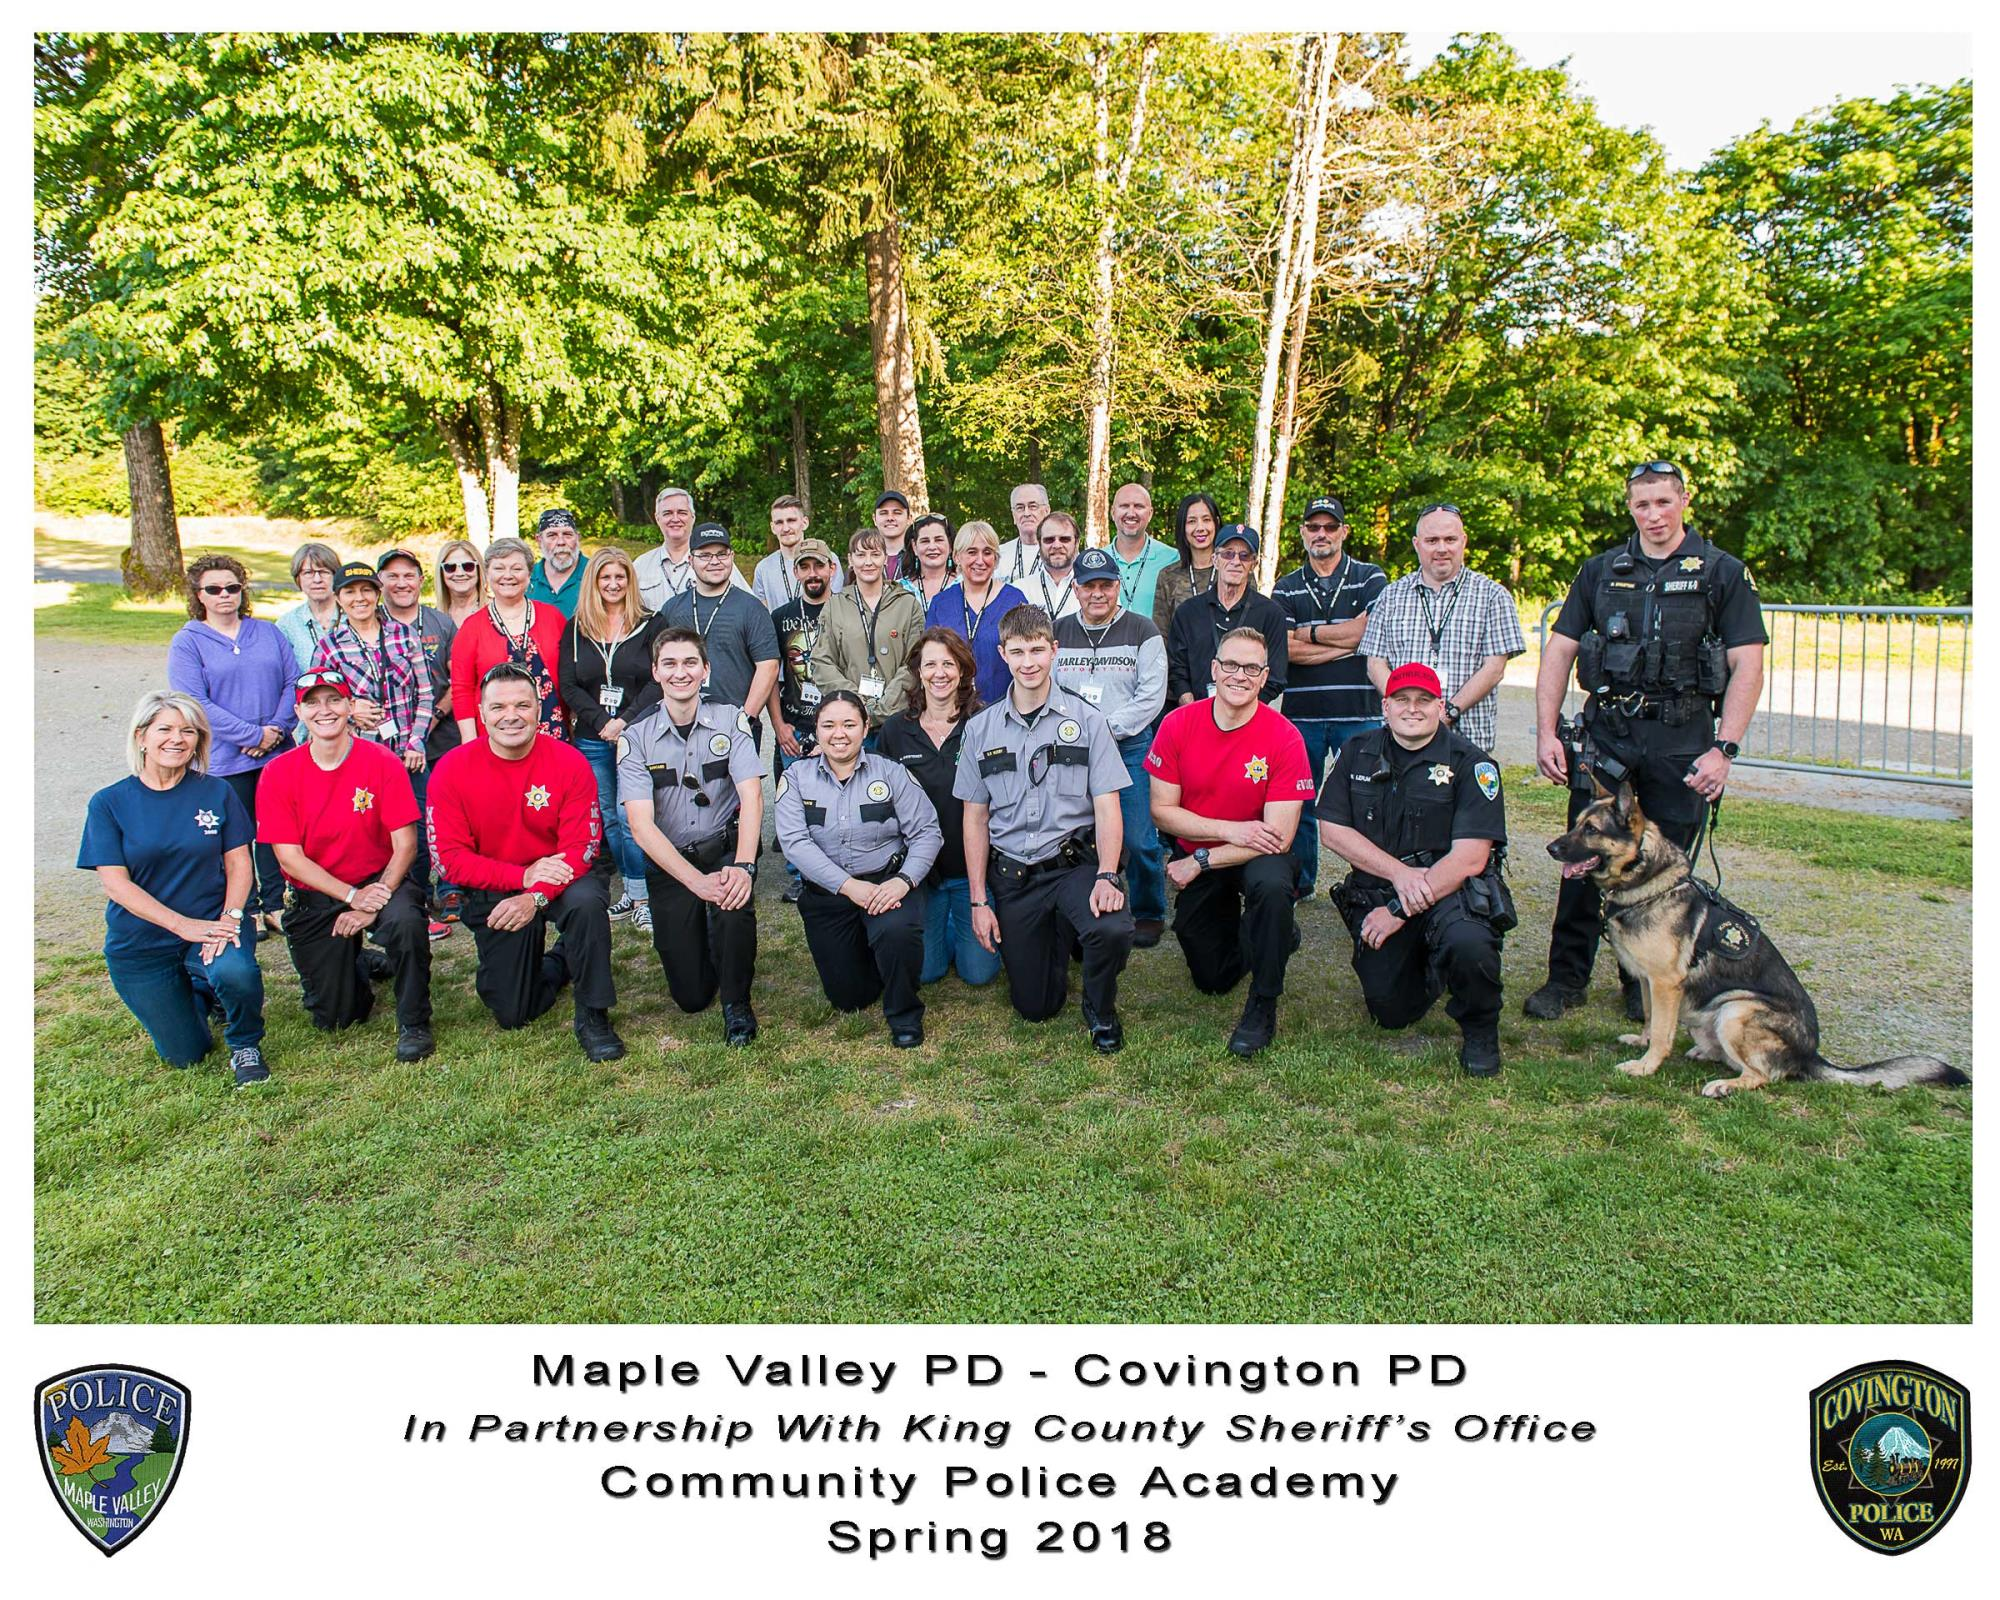 2018-Maple-Valley-Covington-PD-Community-Police-Academy